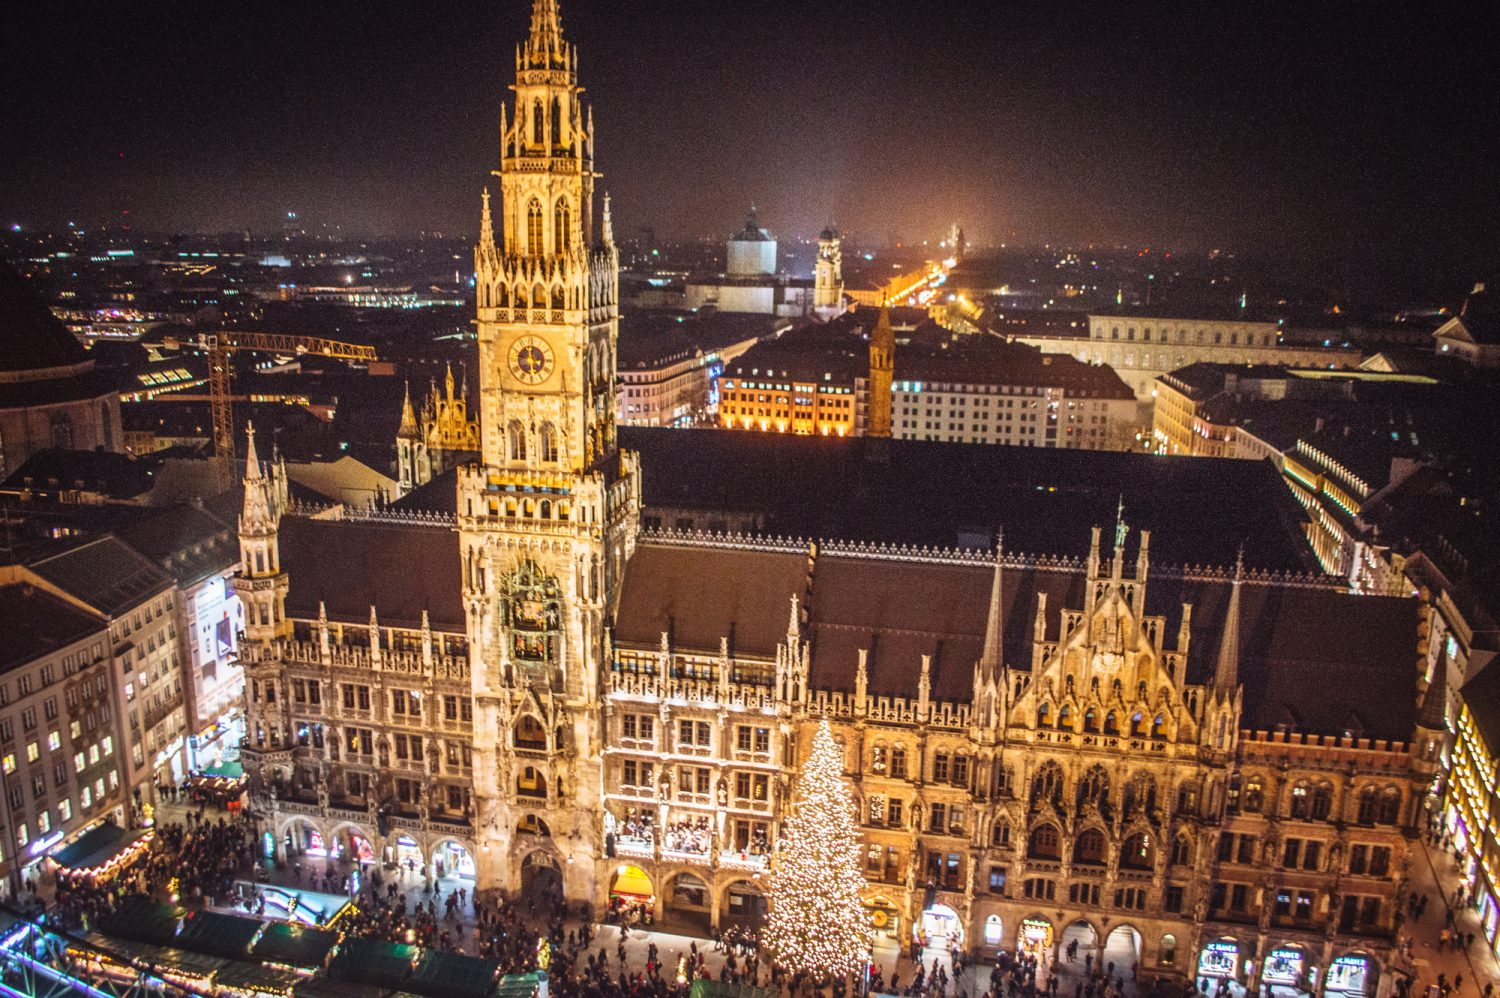 Munich Christmas Markets 2019 Guide: Where to Go, What to Eat and